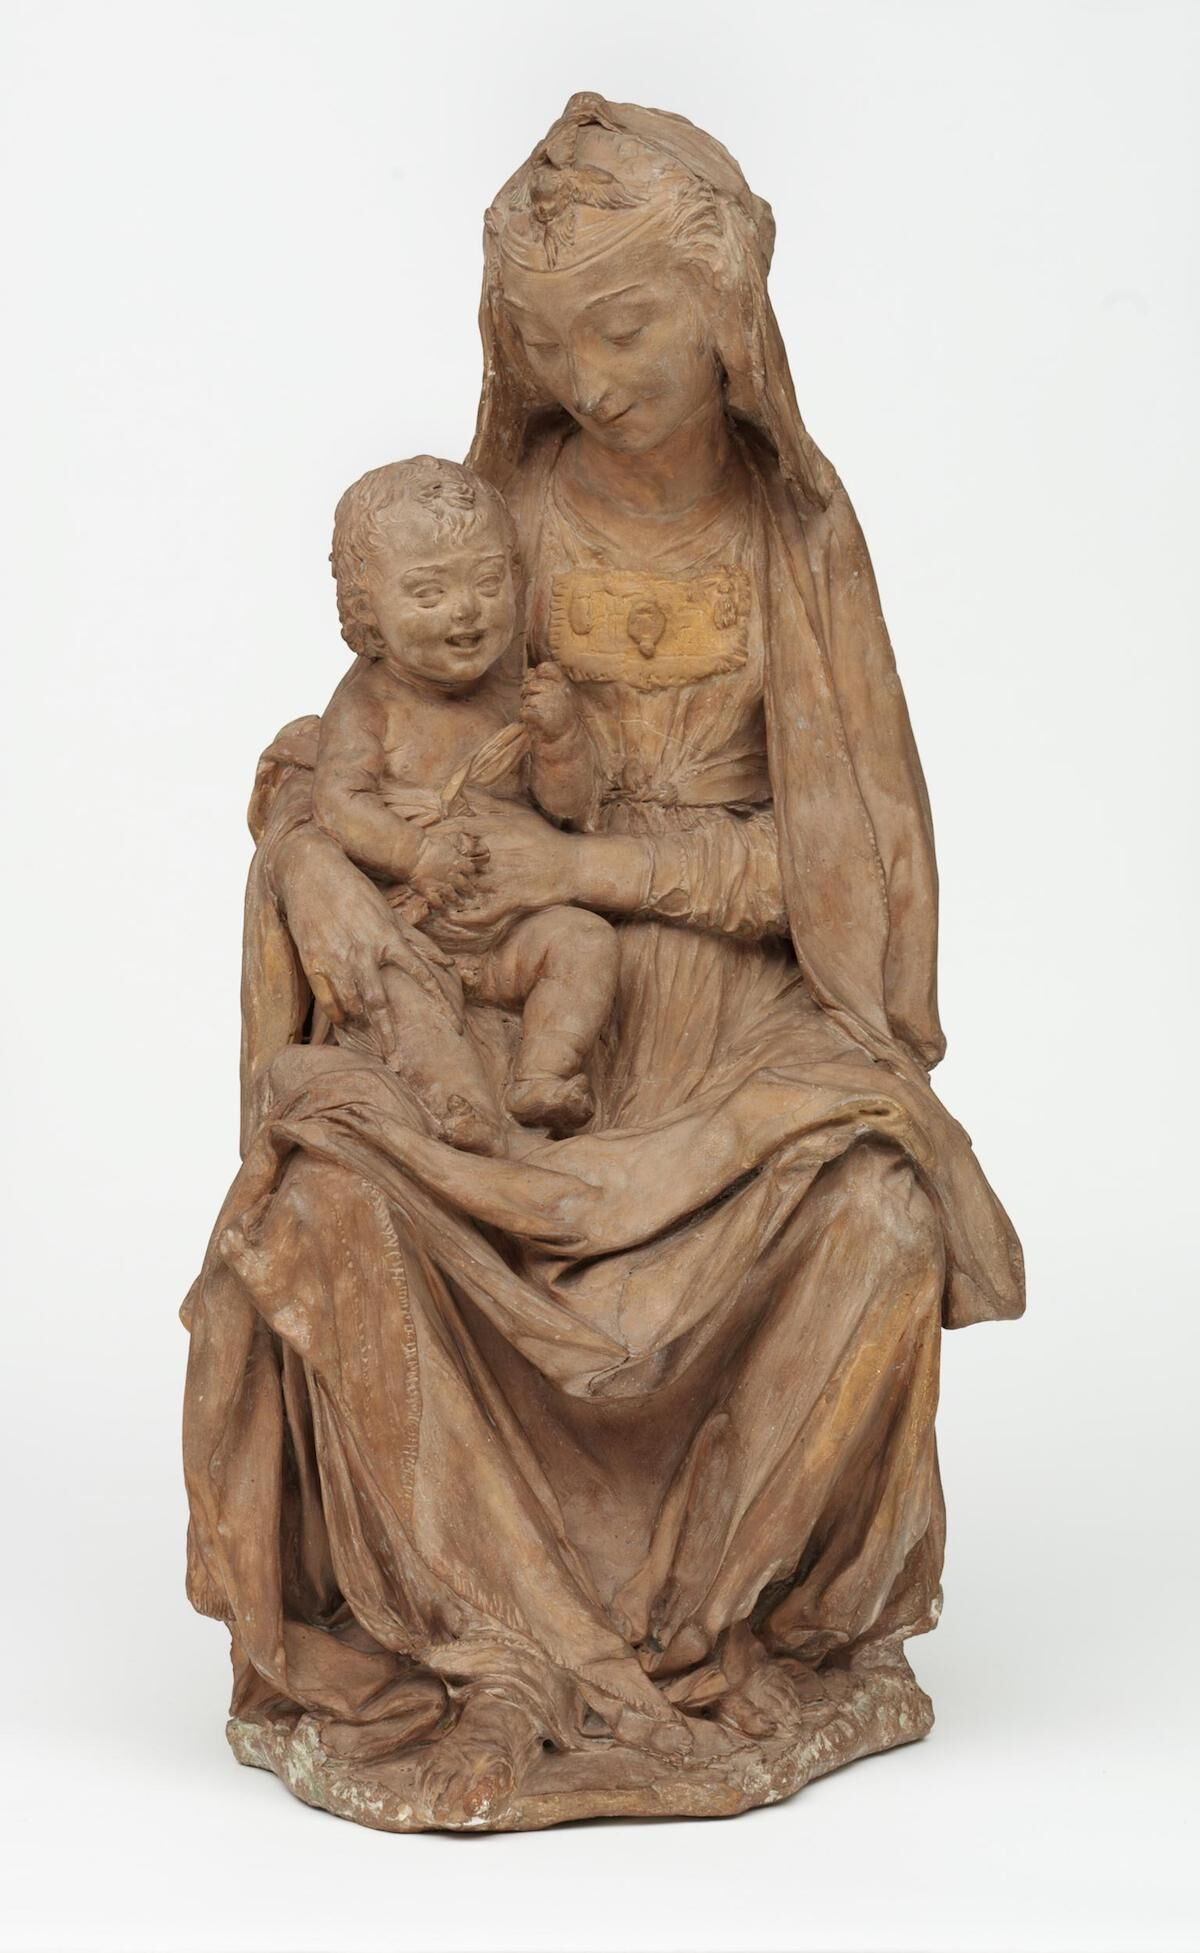 The Virgin with the laughing Child, c. 1465, attributed to Antonio Rossellino. Image © Victoria and Albert Museum, London.